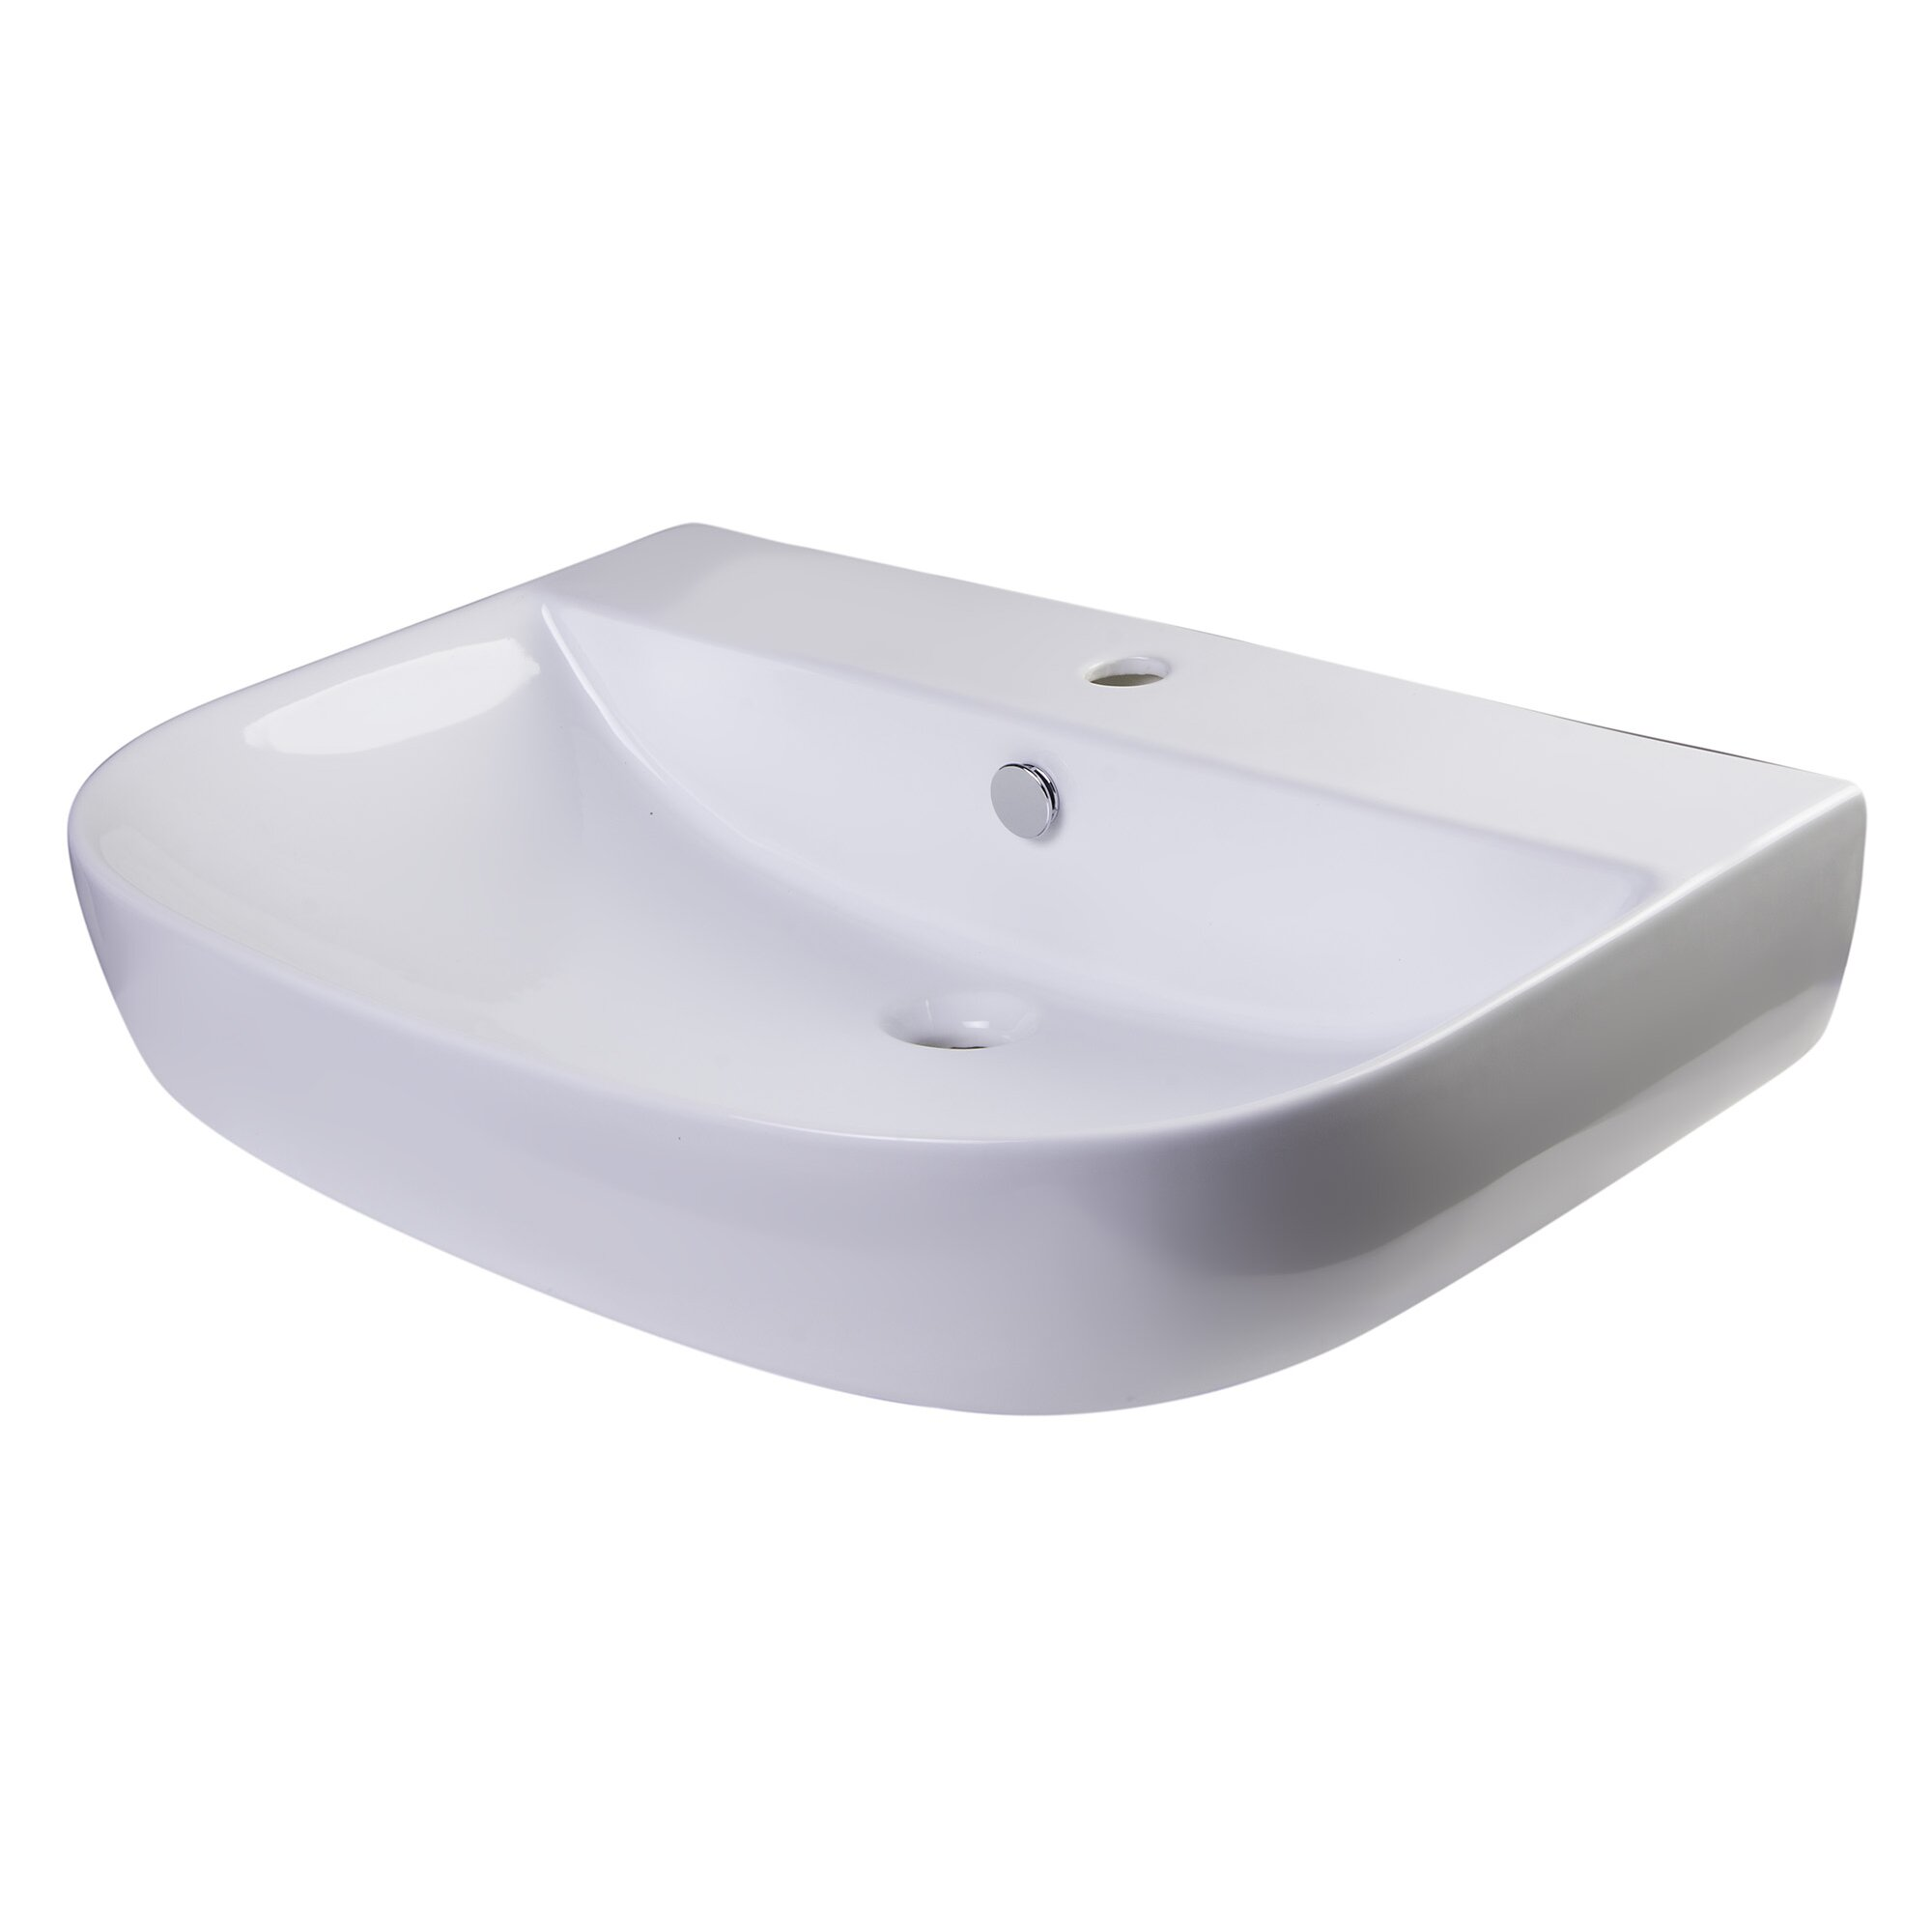 Bathroom Sink Brands : ... Bowl Porcelain Wall Mounted Bath Sink with Overflow by Alfi Brand